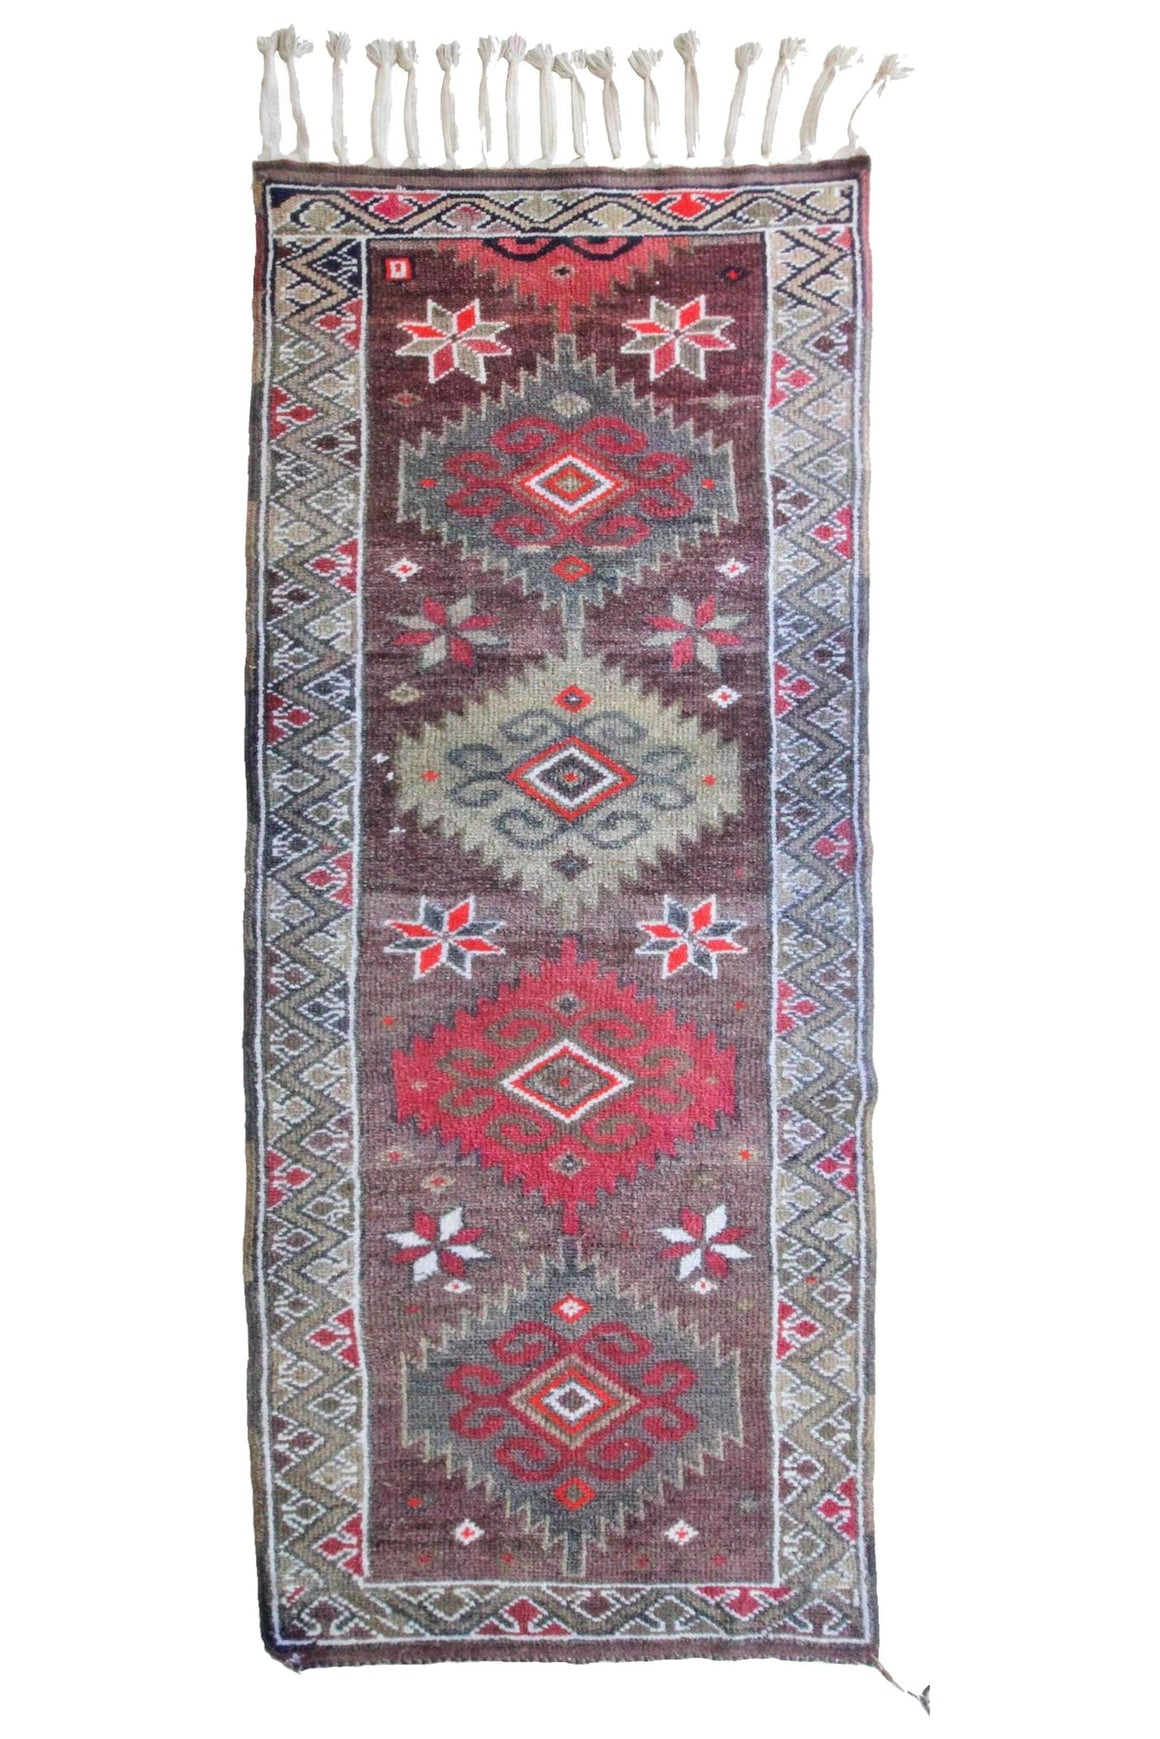 "'Tansy' Vintage Turkish Rug - 3'5"" x 9'3"" - Canary Lane - Curated Textiles"